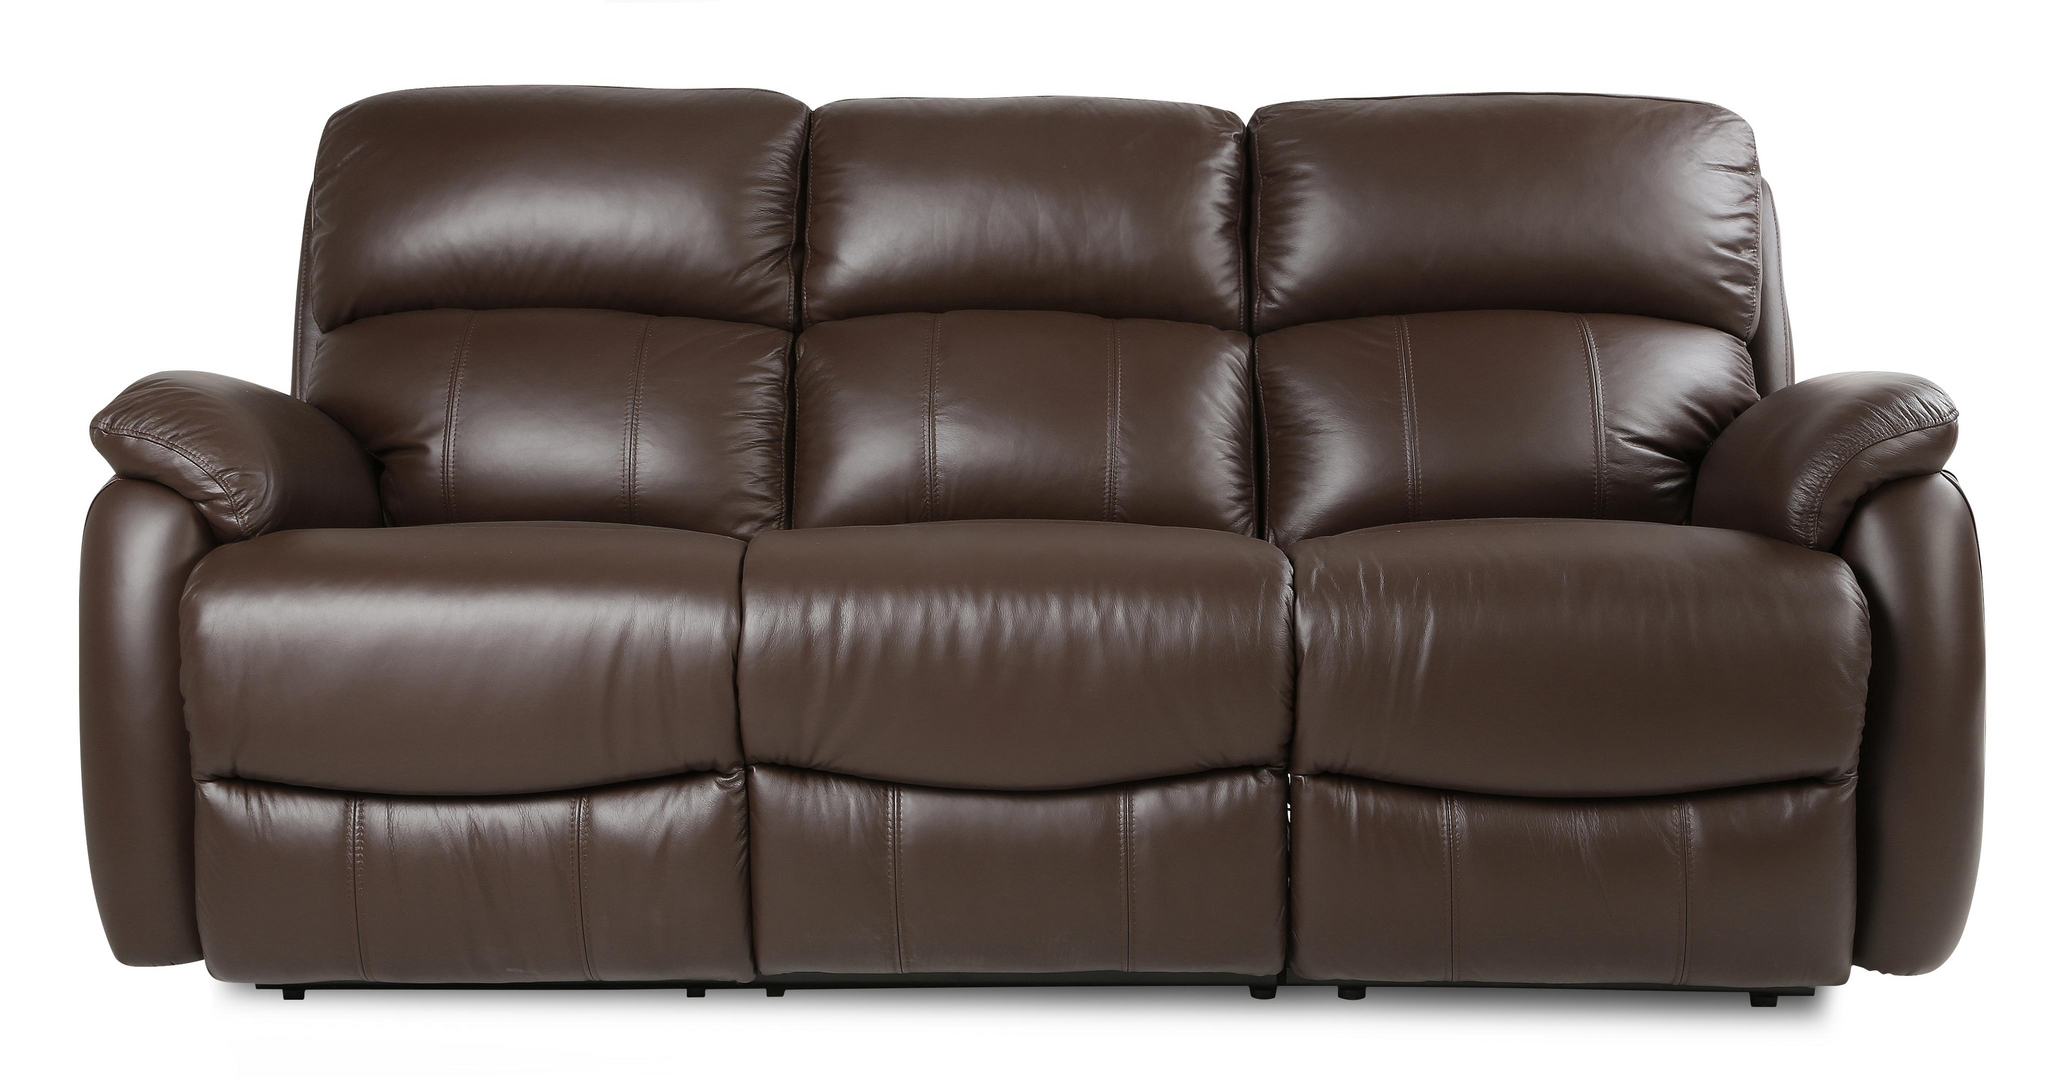 Dfs Navona Couch Brown Leather Settee 3 Seater Power